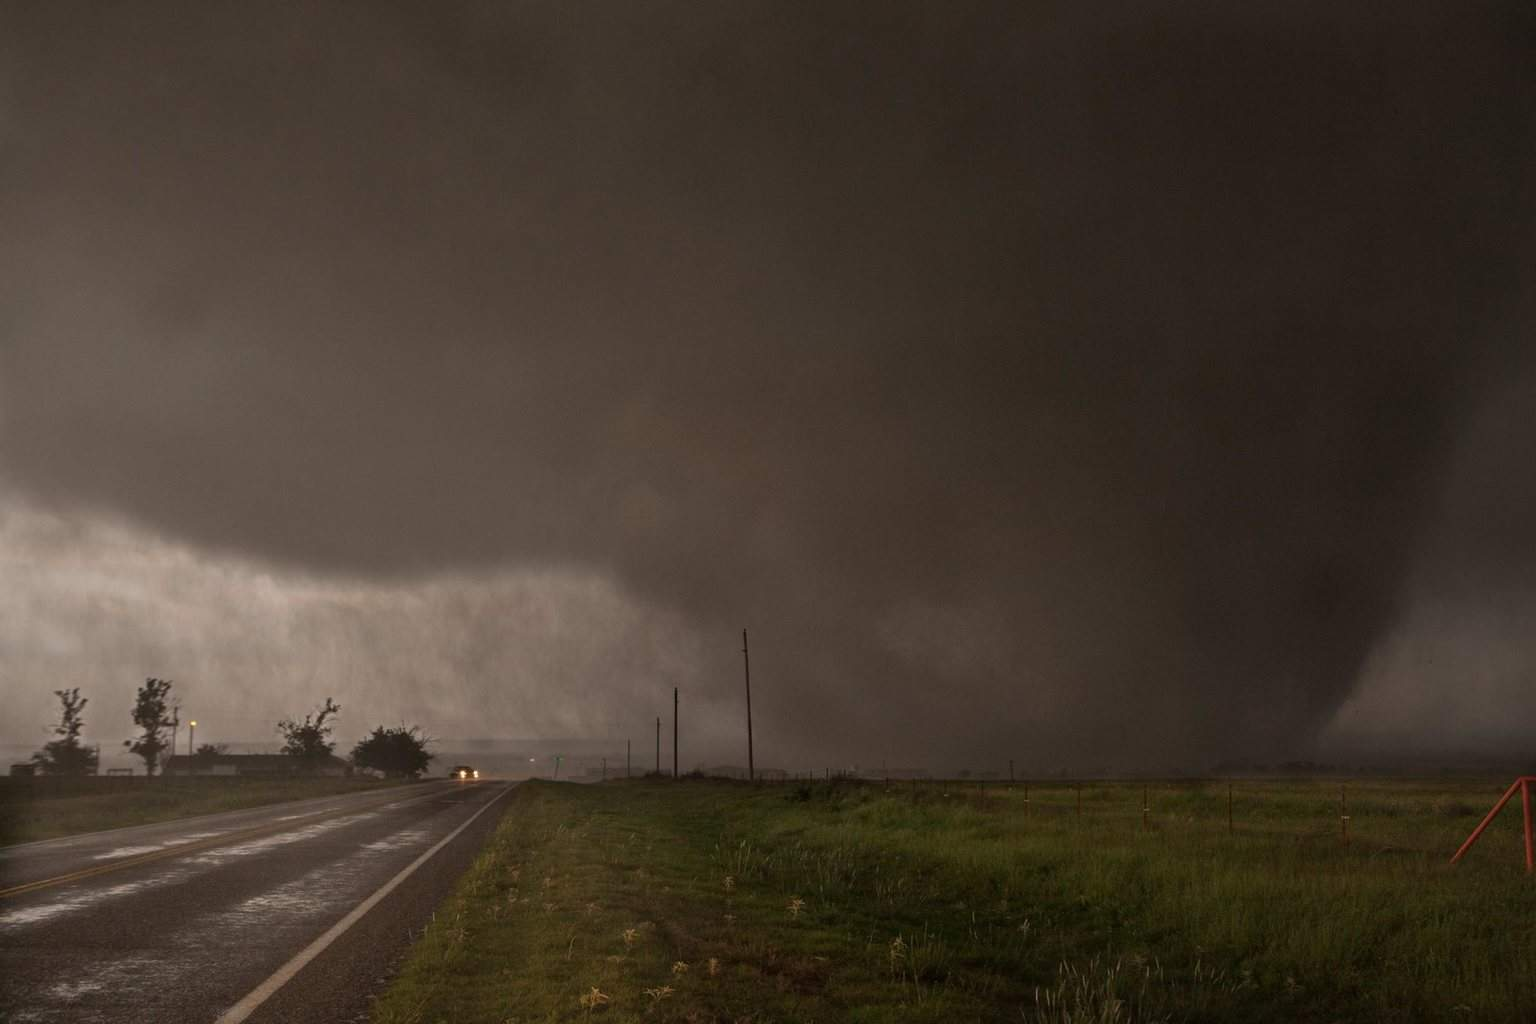 5/16/15 Elmer, OK wedge as it crossed at relatively close range to my south on HWY283 south of town. Waterfall roar was quite intense as it passed, followed by sporadic bangs of baseball hail was my cue to get the camera off the tripod and get back in my truck! Check out my video of this tornado below, it's one of the best i've shot to date.